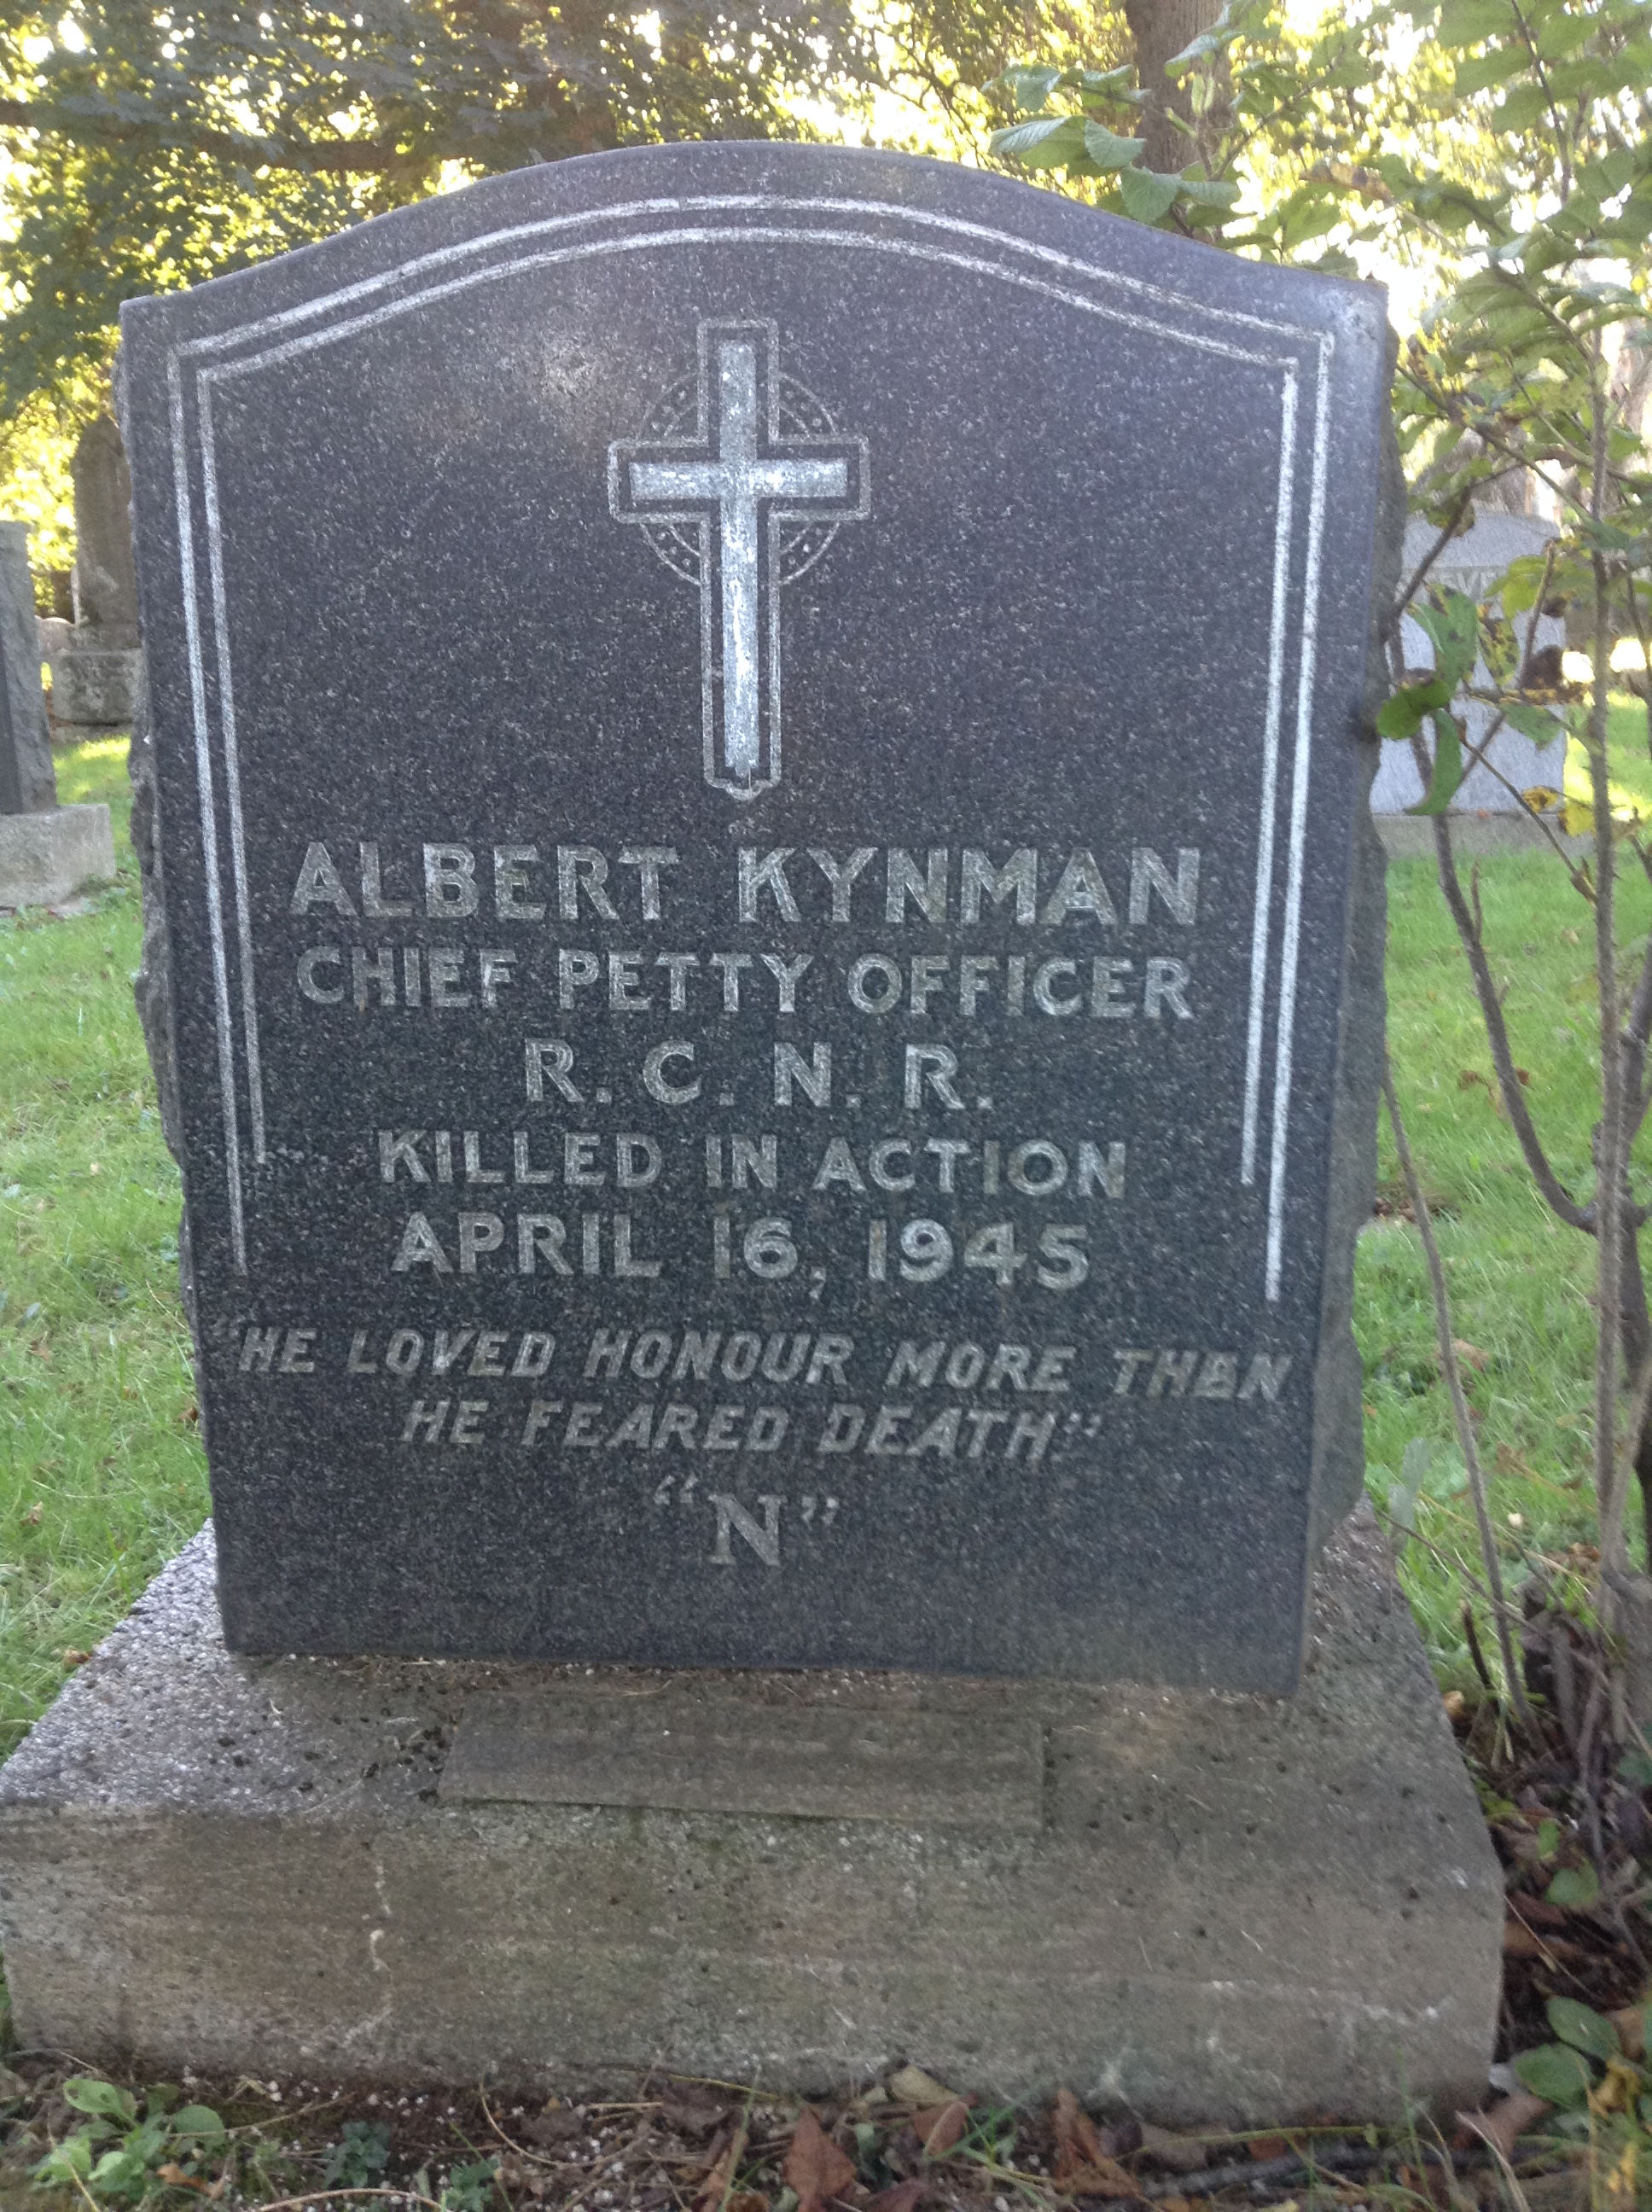 Grave Marker– Grave marker for Chief Petty Officer Albert Kynman at Camp Hill Cemetery in Halifax, Nova Scotia. Image taken 13 October 2017 by Tom Tulloch.